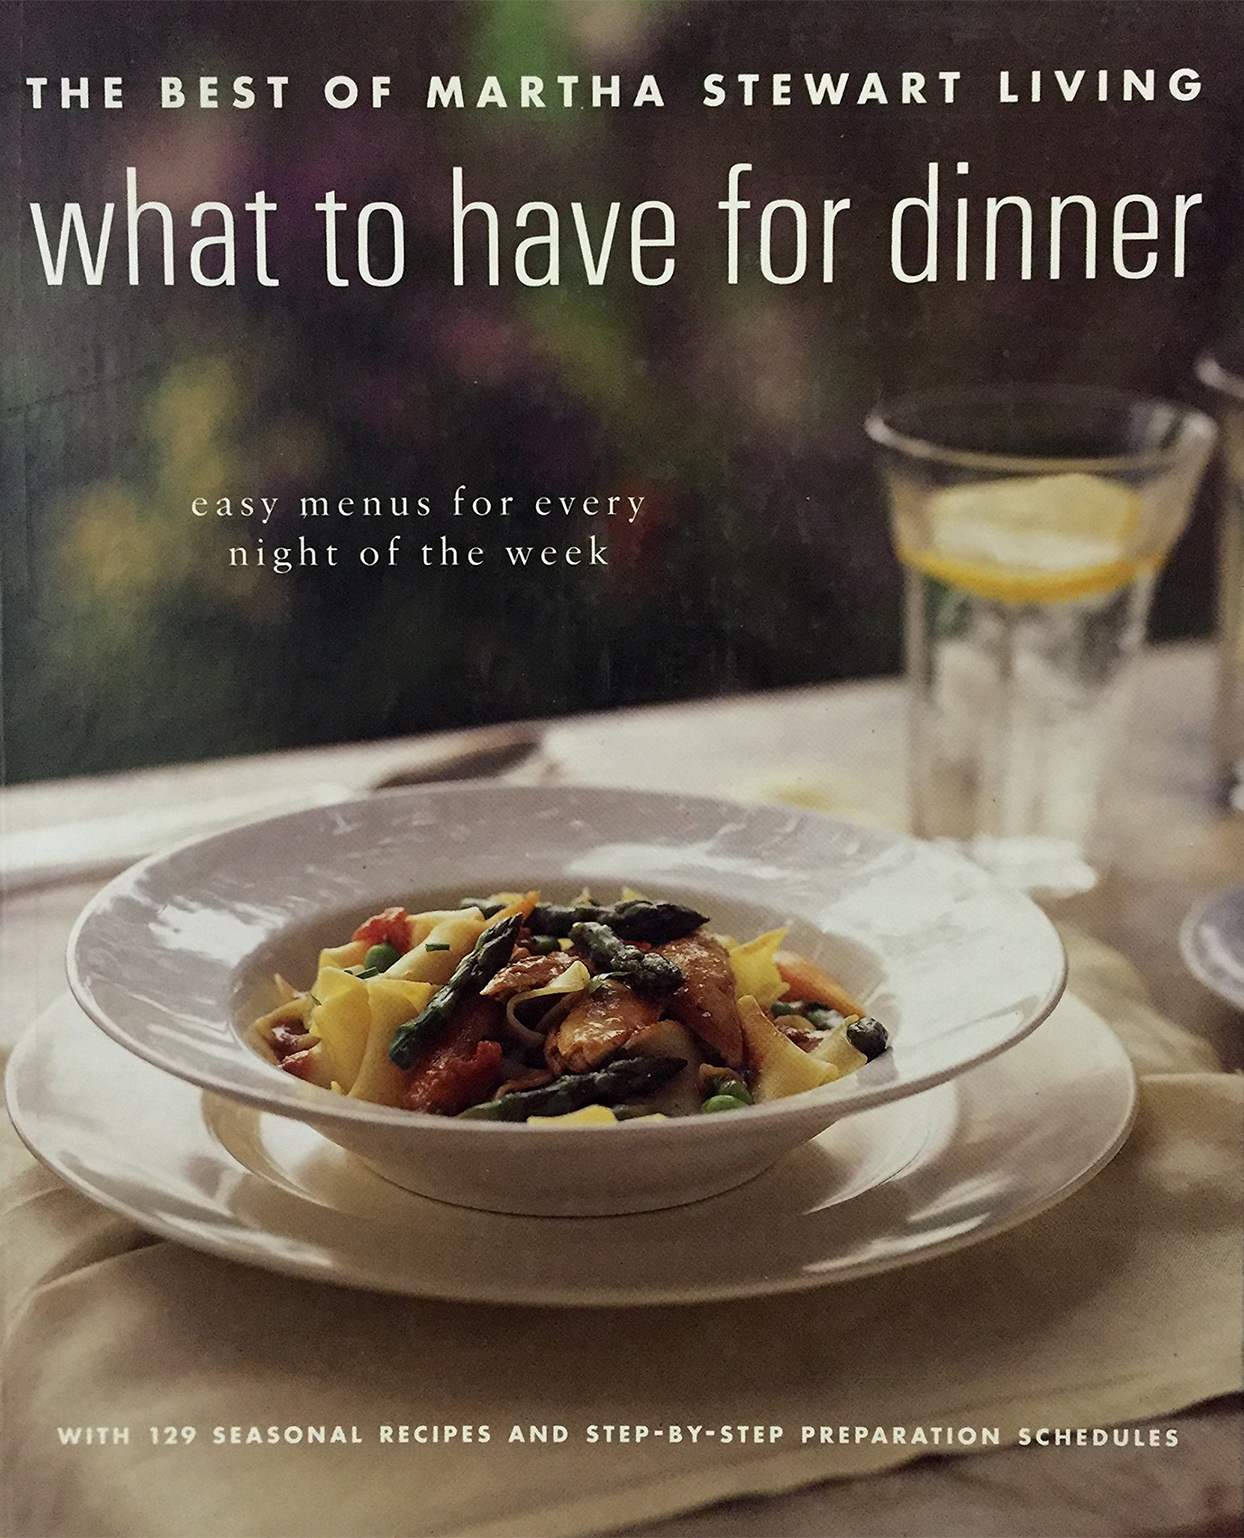 What to Have for Dinner book